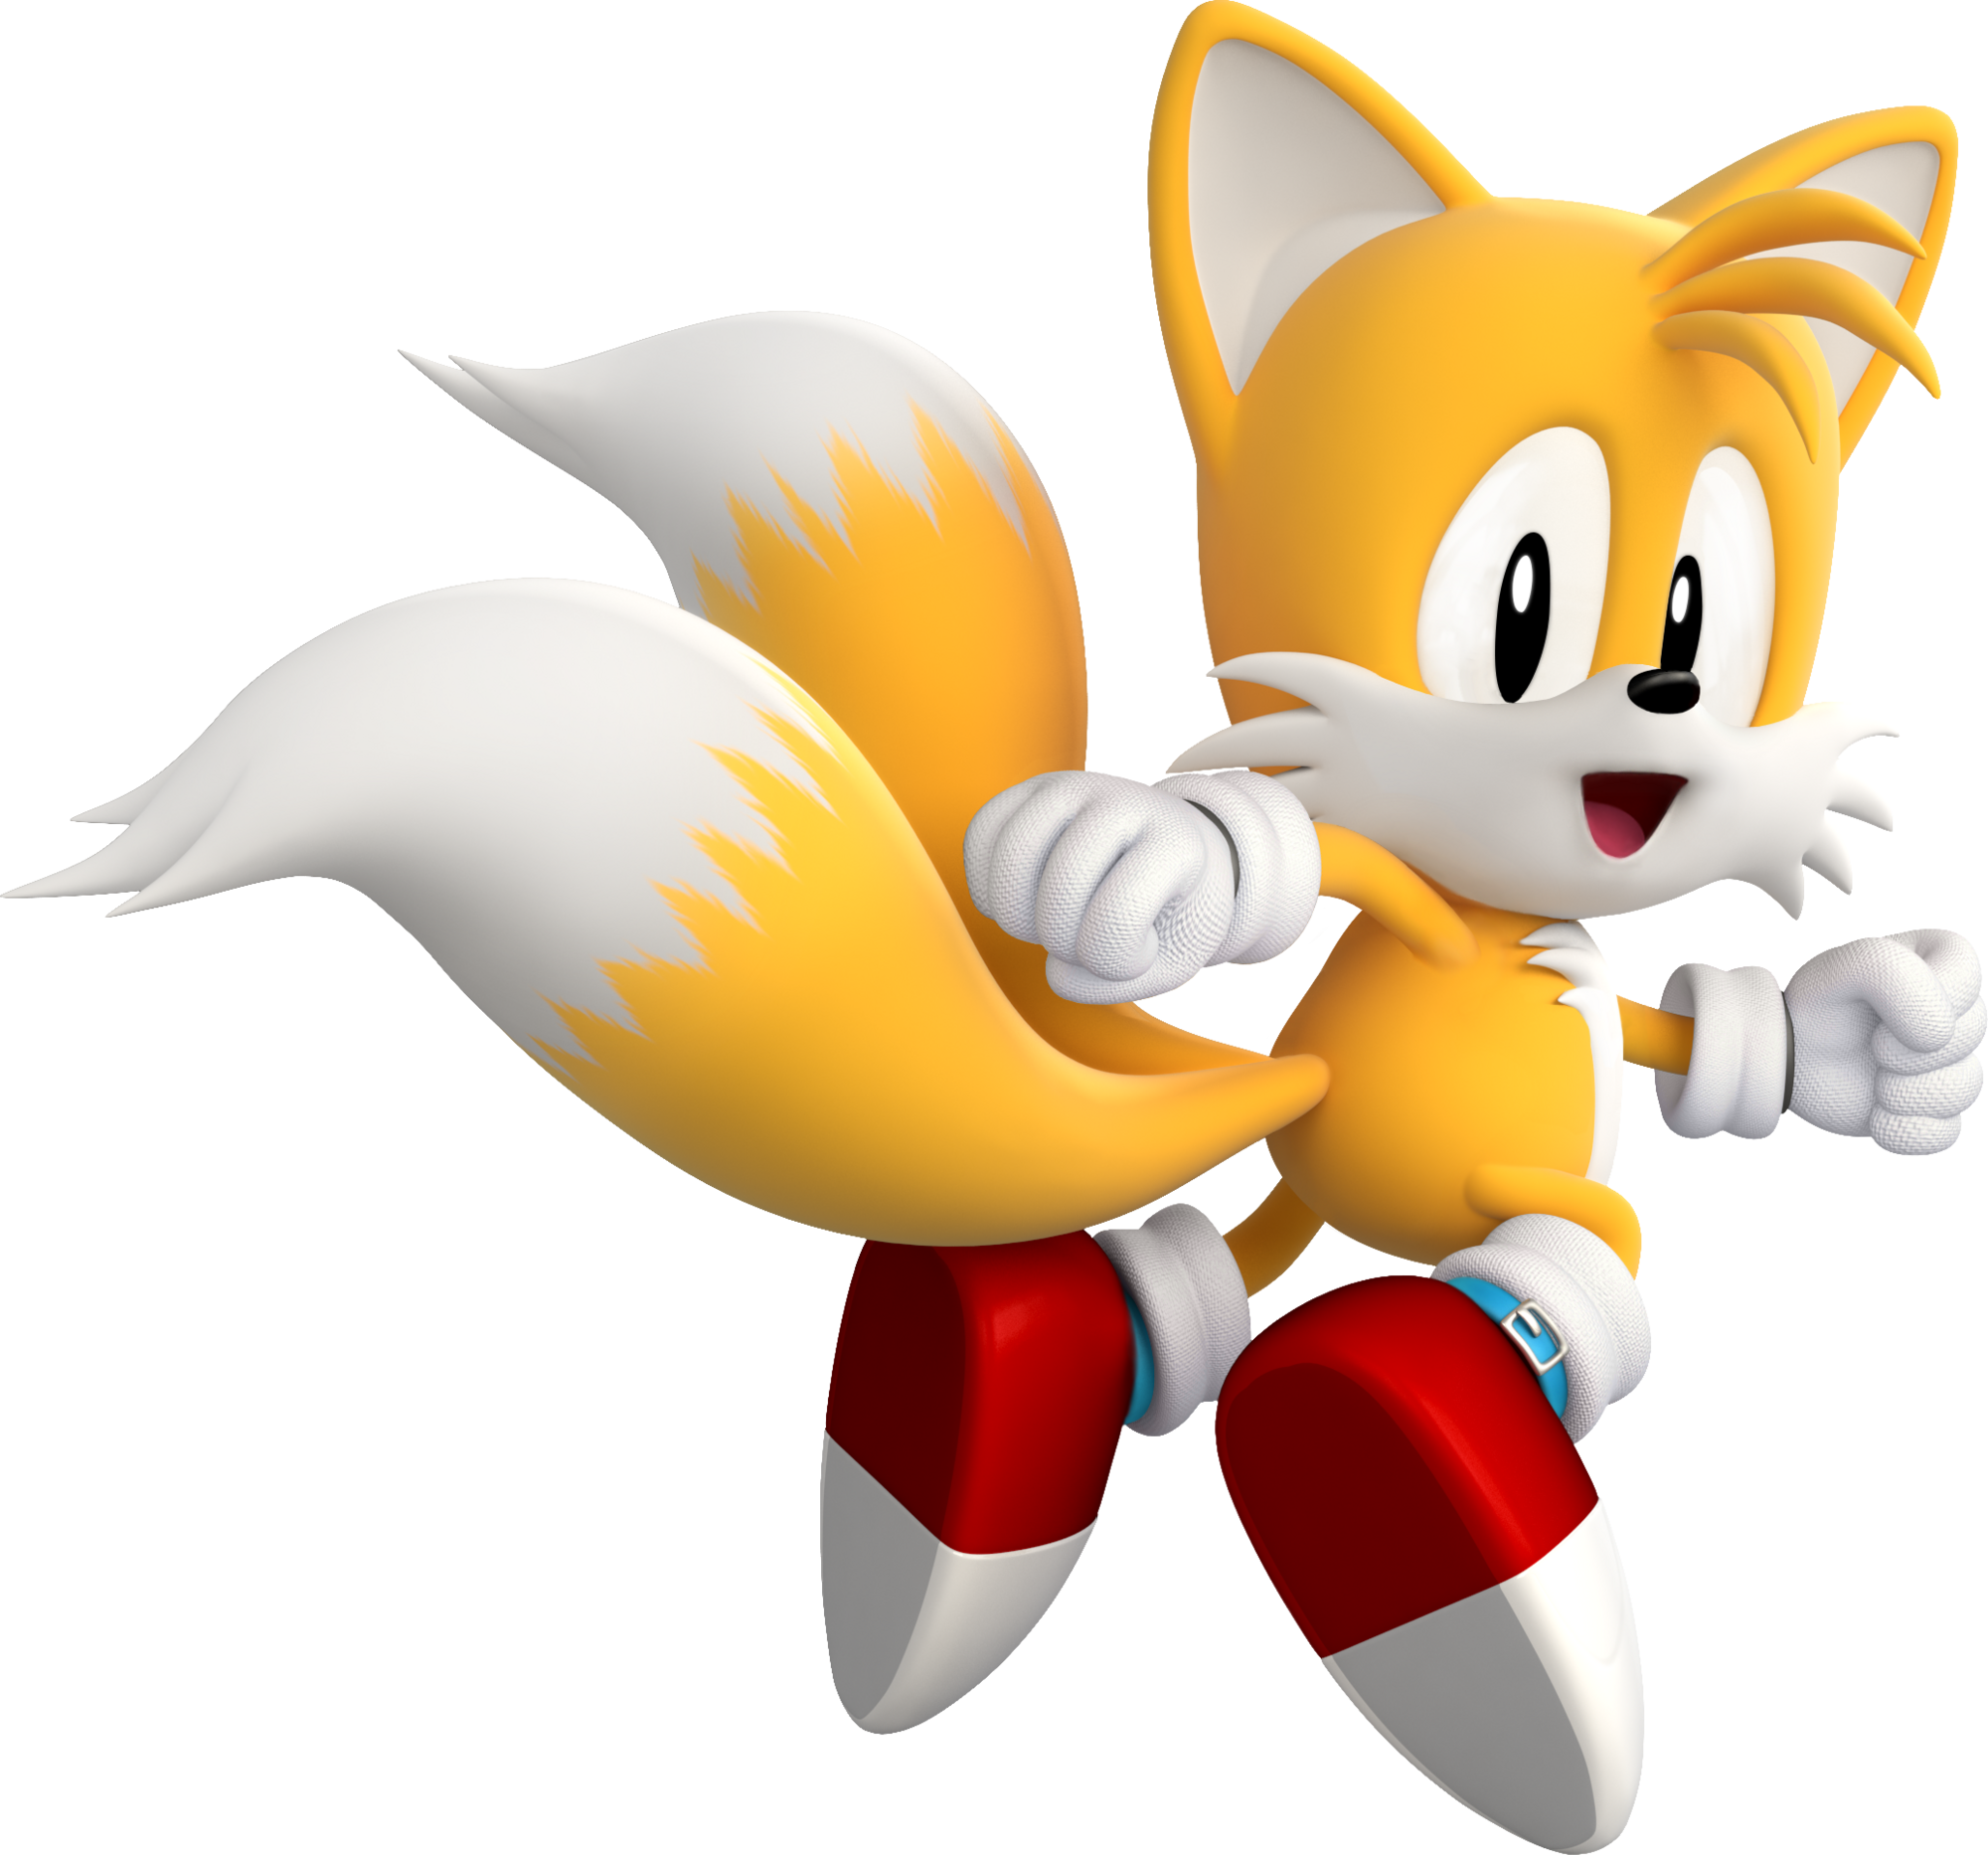 Miles Quot Tails Quot Prower Classic Sonic S World Sonic News